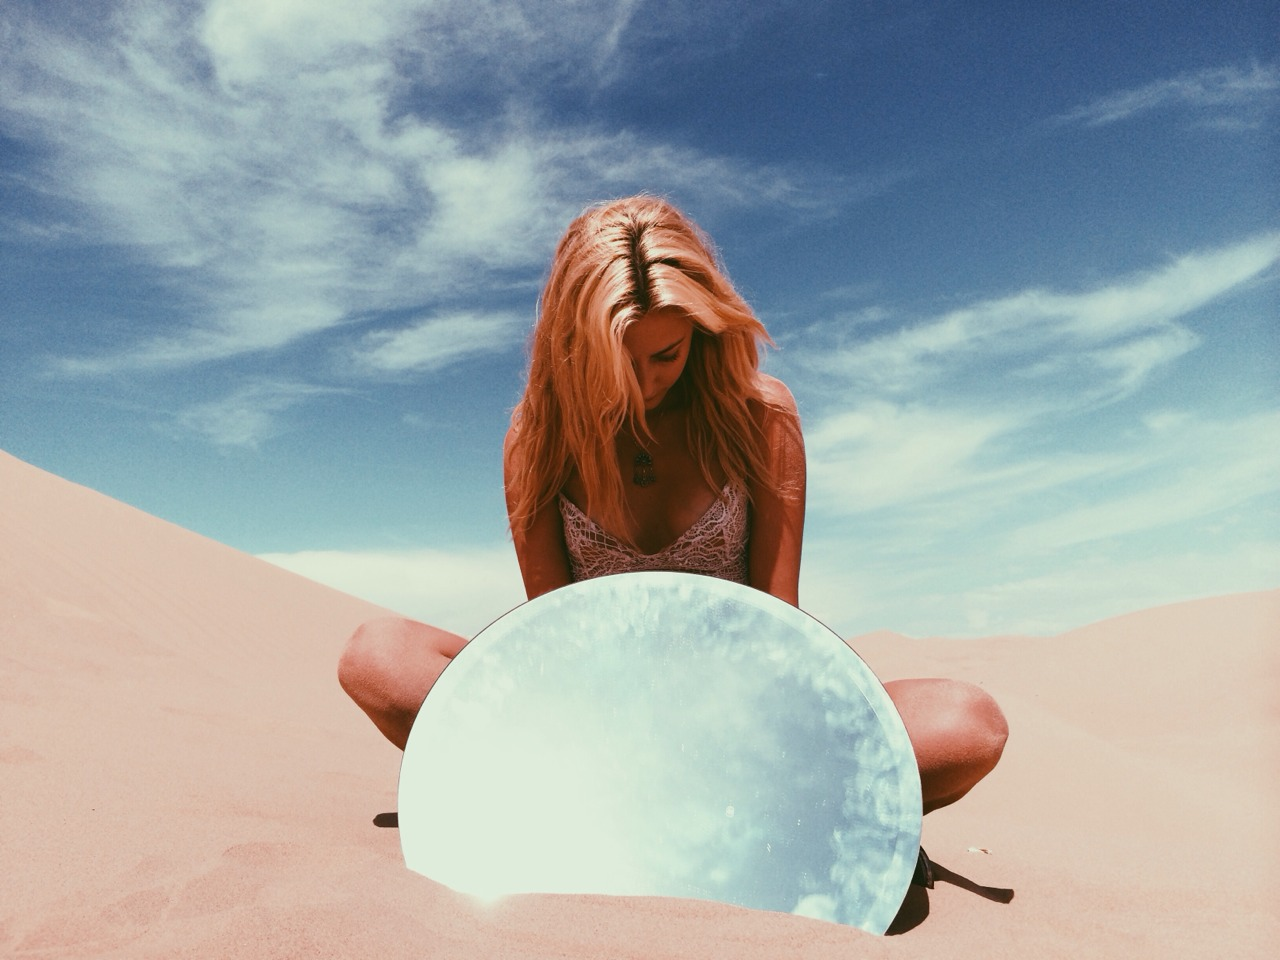 photography and mixed media by Dana Trippe